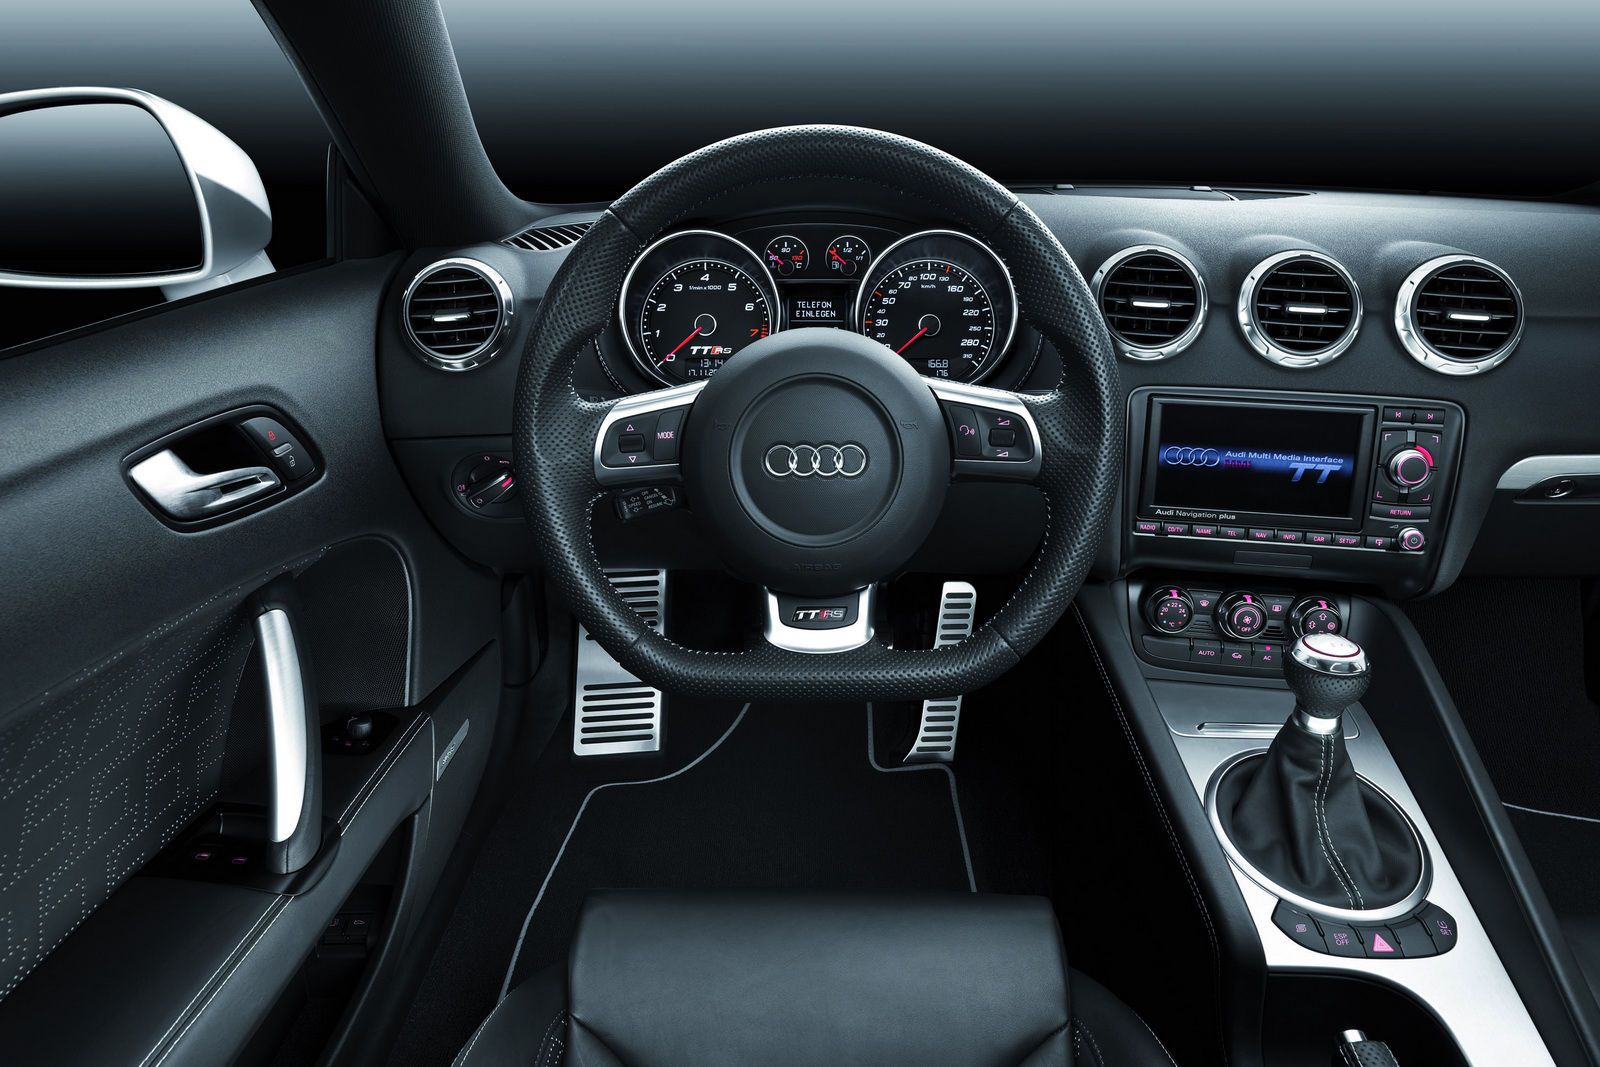 2012 Audi TT RS 2 New Audi TT RS available in US just at $ 56,850